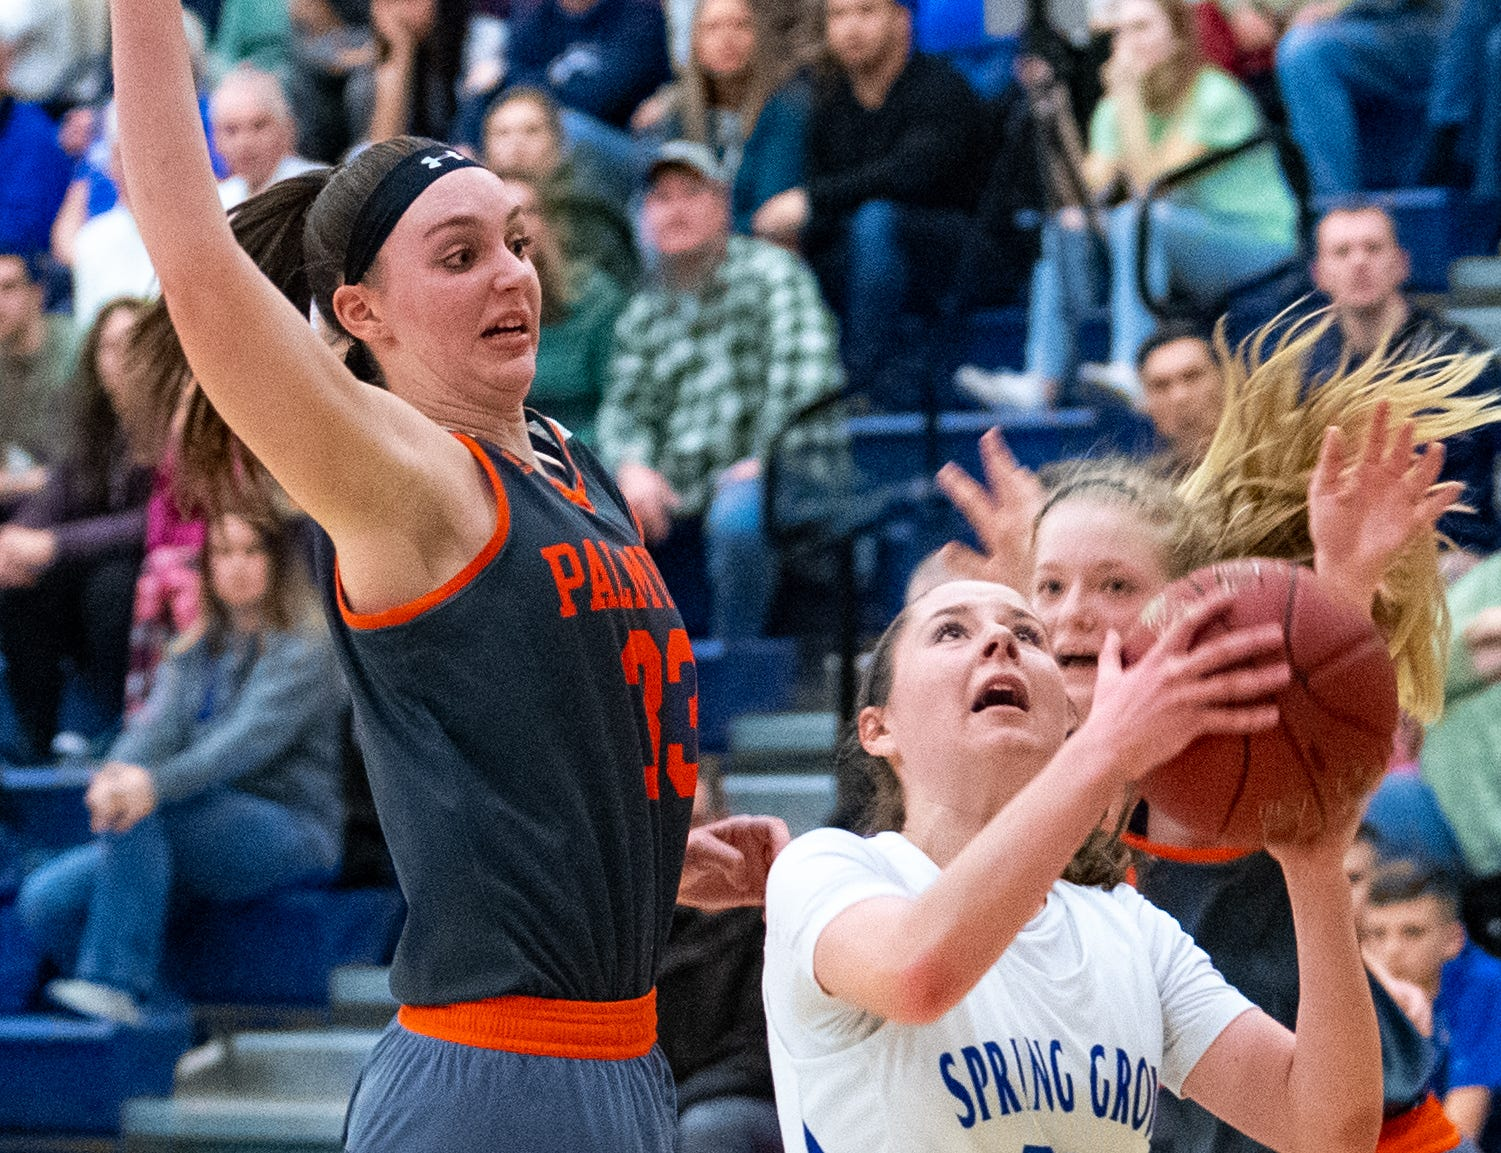 Olivia Richardson (33) of Palmyra looks to block Spring Grove's Ellie Glass (10) during the District 3 Class 5A girls' basketball quarterfinal between Spring Grove and Palmyra, Friday, February 22, 2019 at Spring Grove Area High School. The Cougars defeated the Rockets 43 to 41.